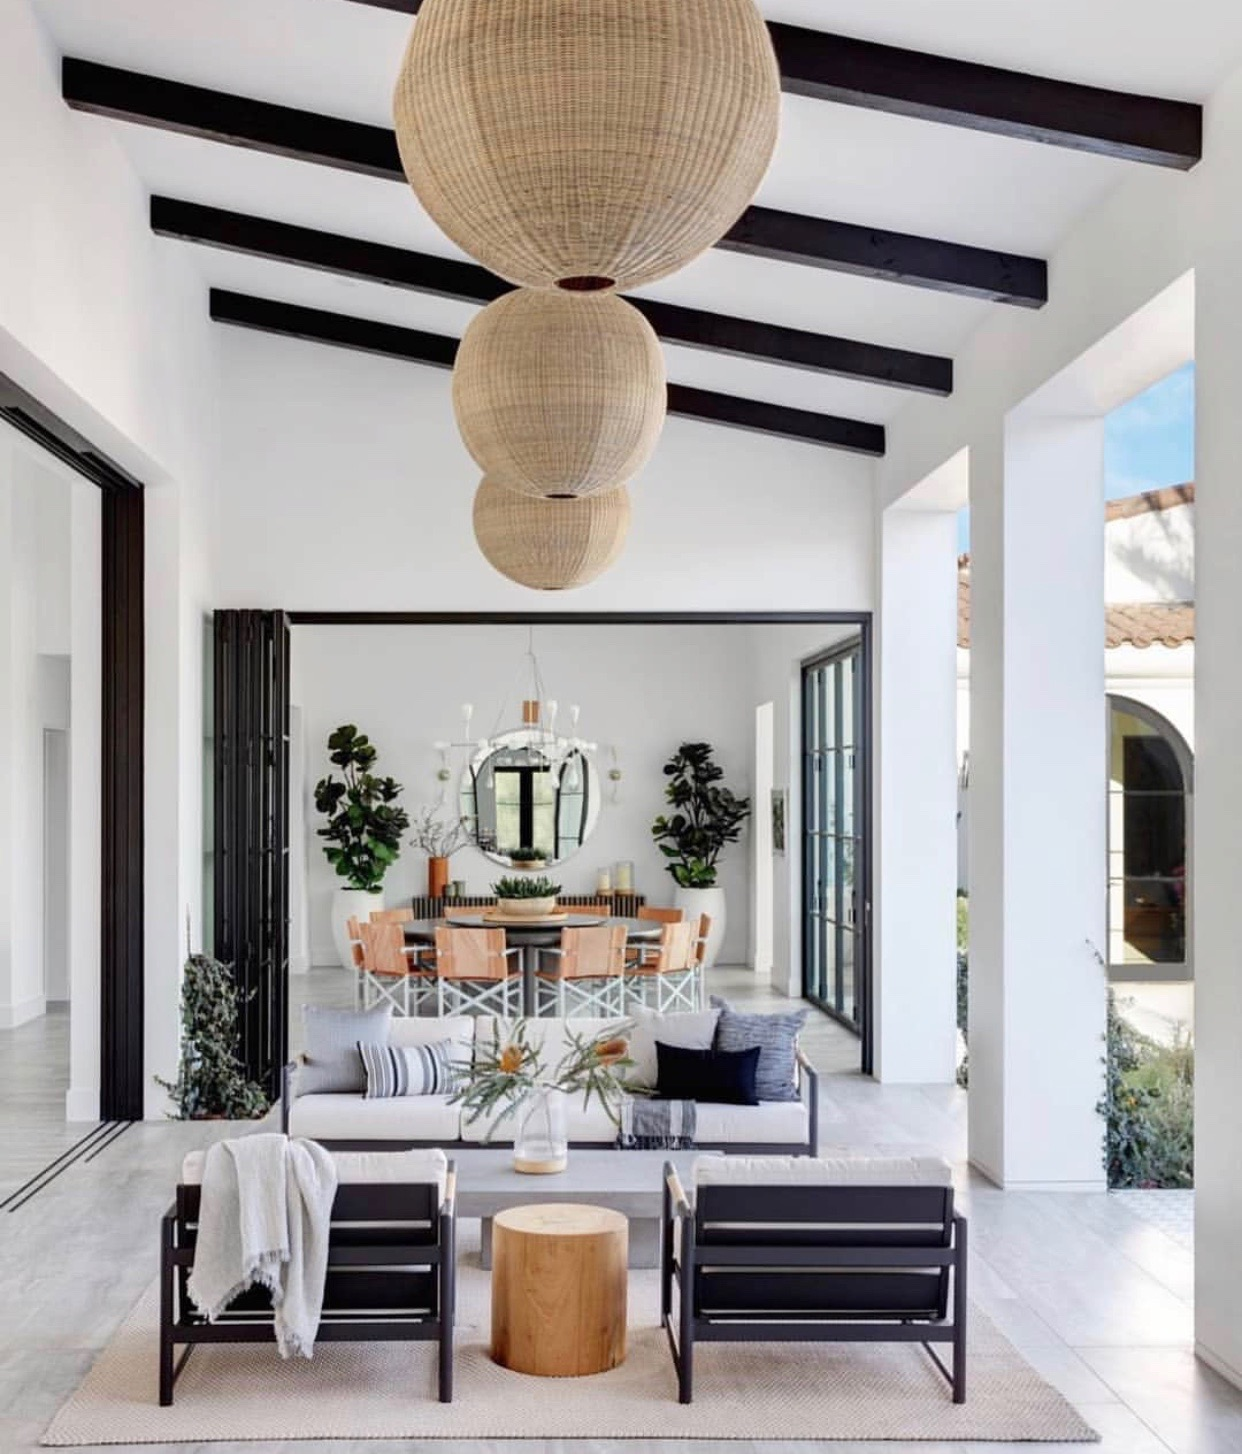 7 Dreamy Patios we Just Had to Show You